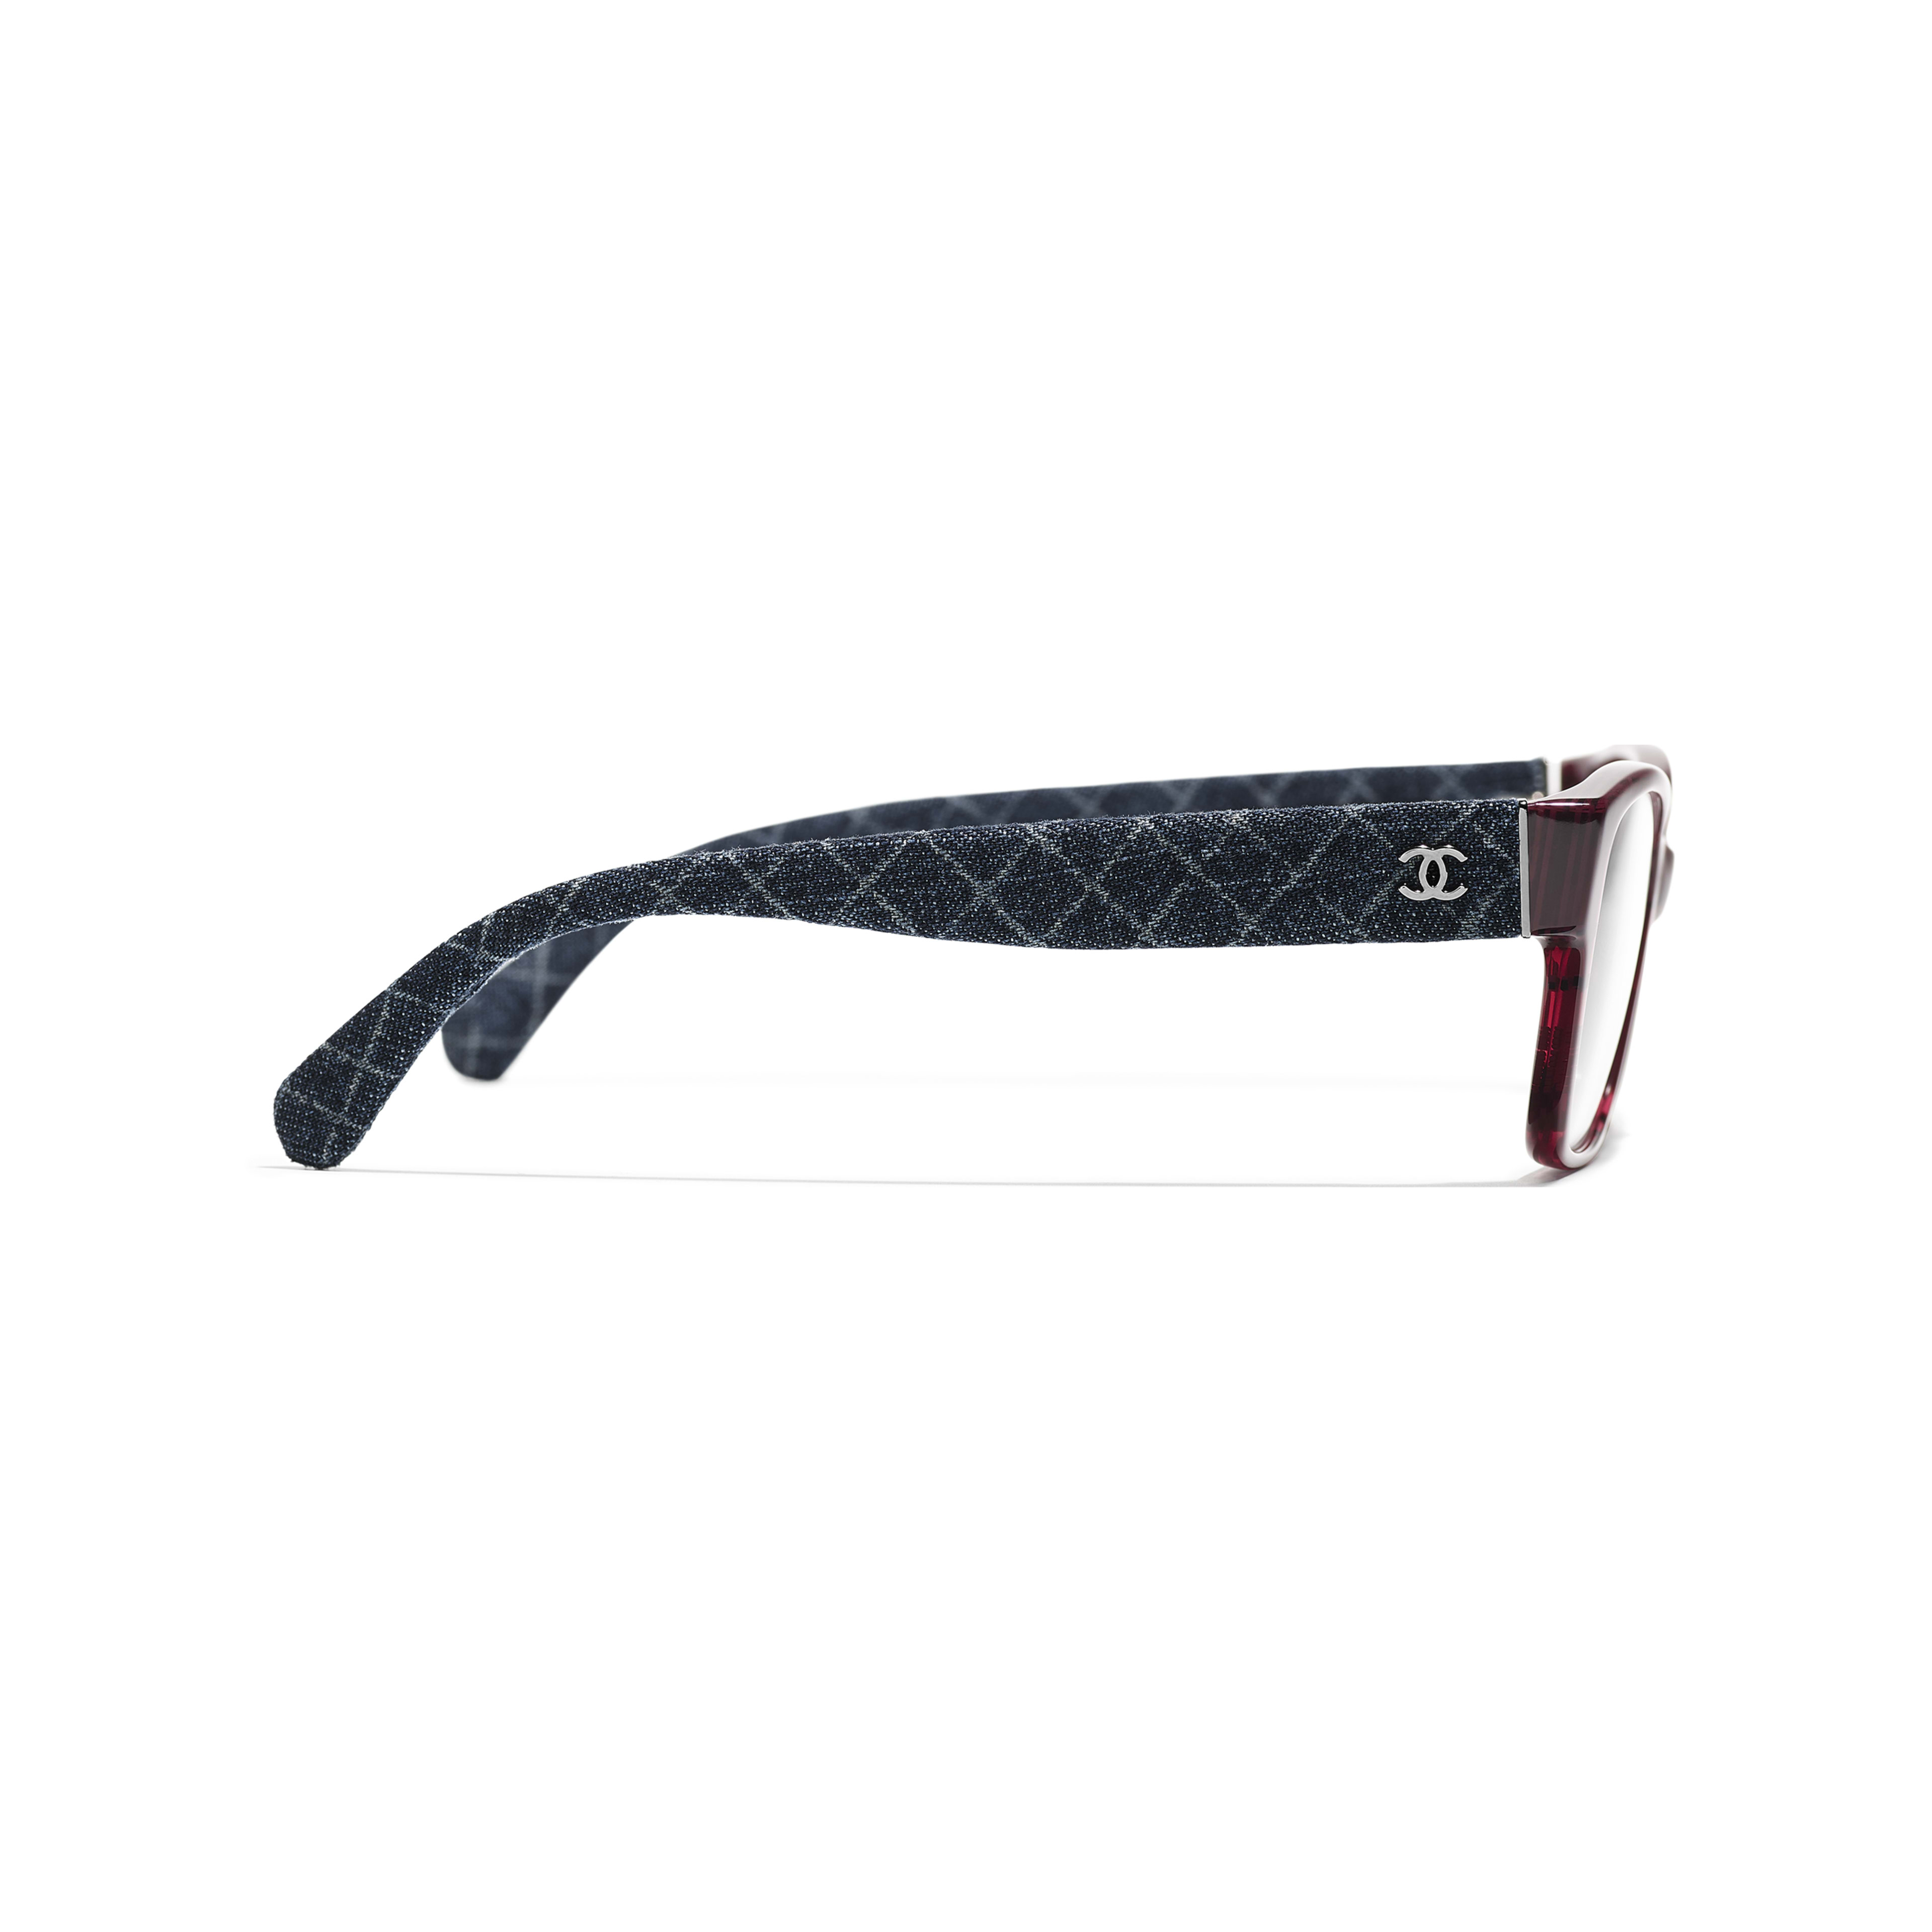 Rectangle Eyeglasses - Red & Dark Blue - Acetate & Denim - Other view - see full sized version